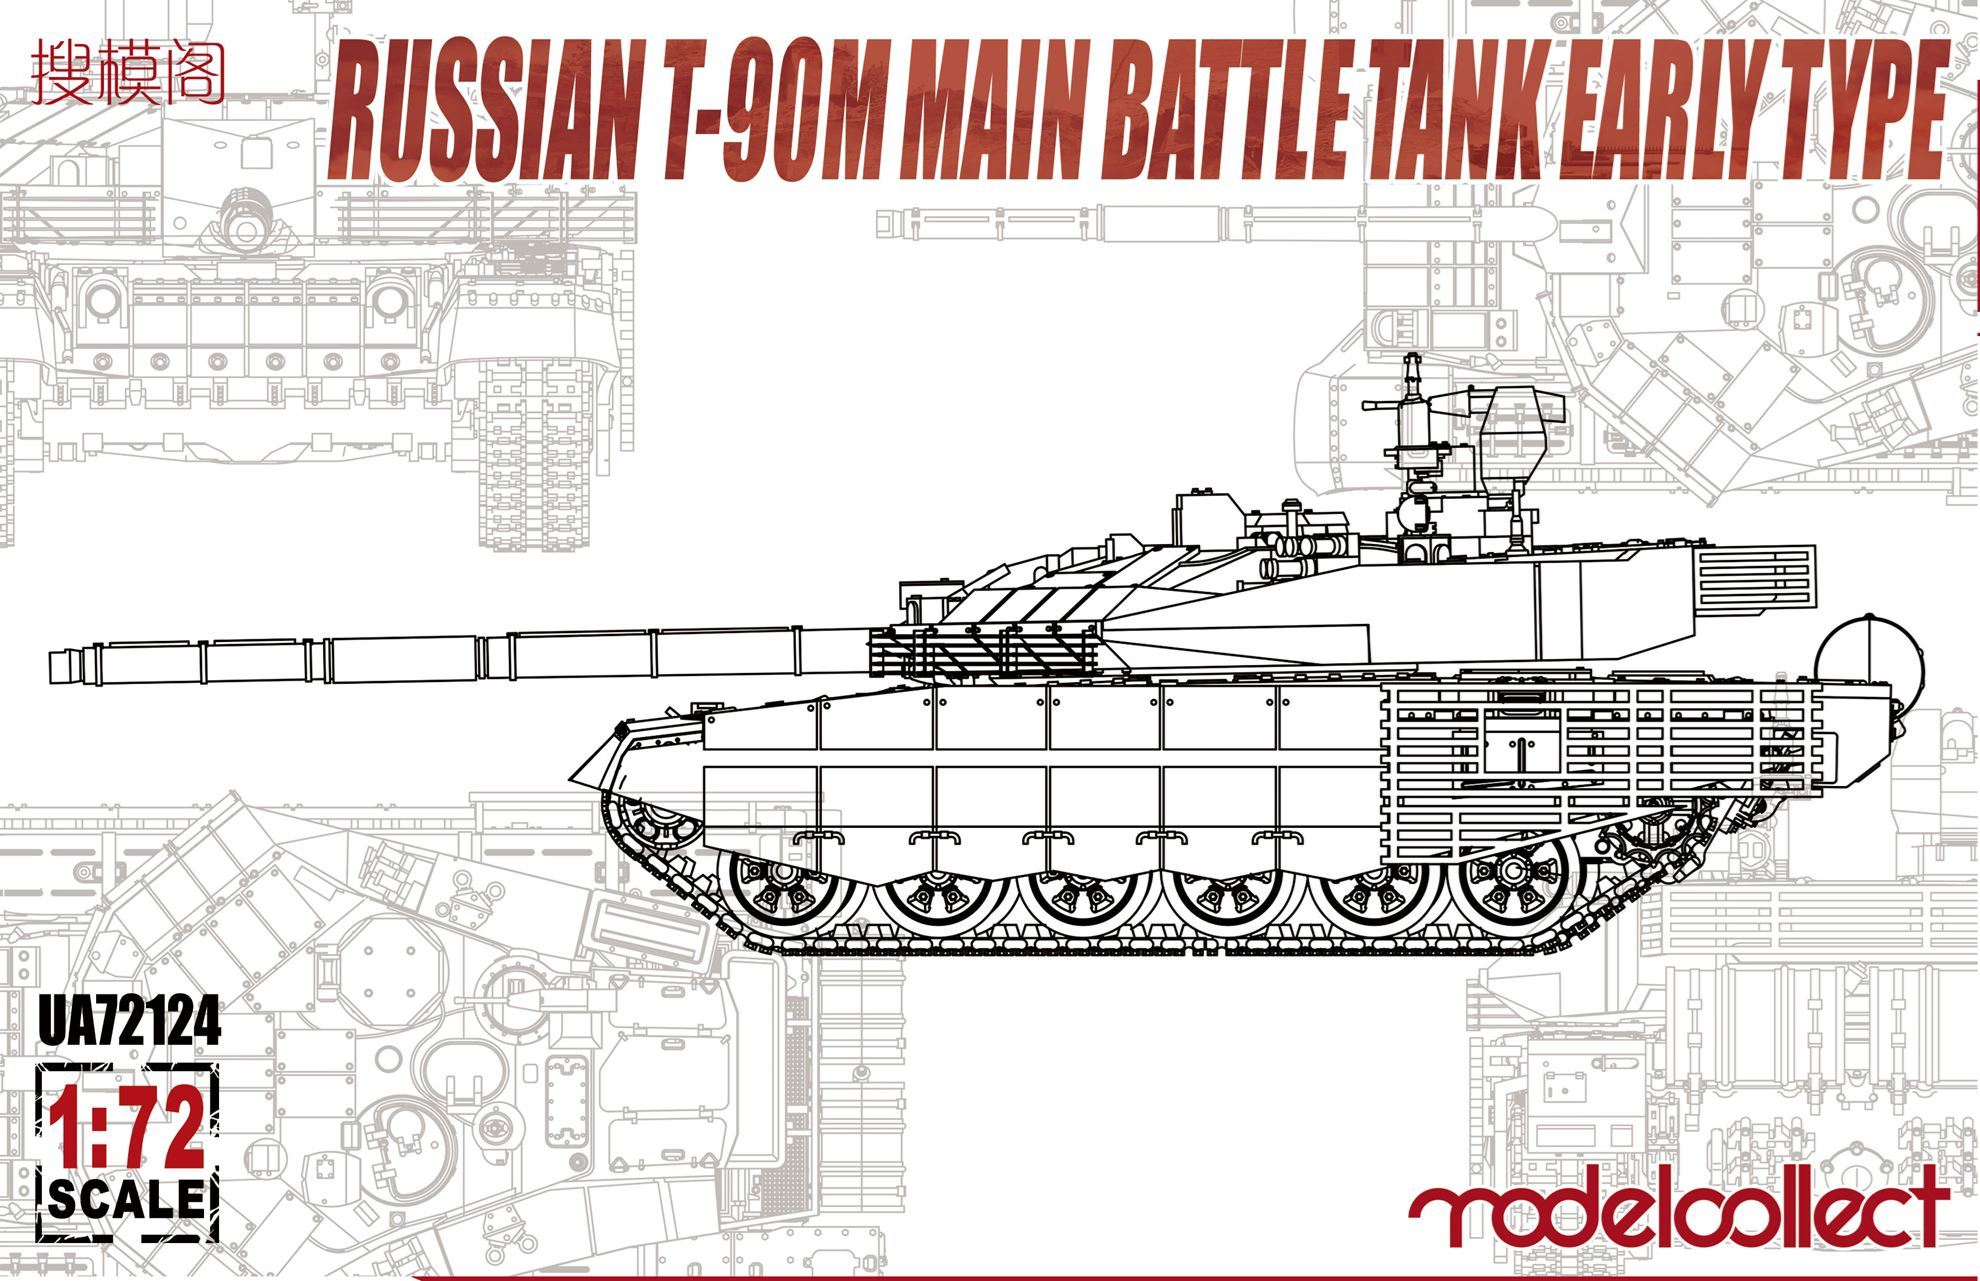 ModelCollect Russian T-90M Main battle tank early type